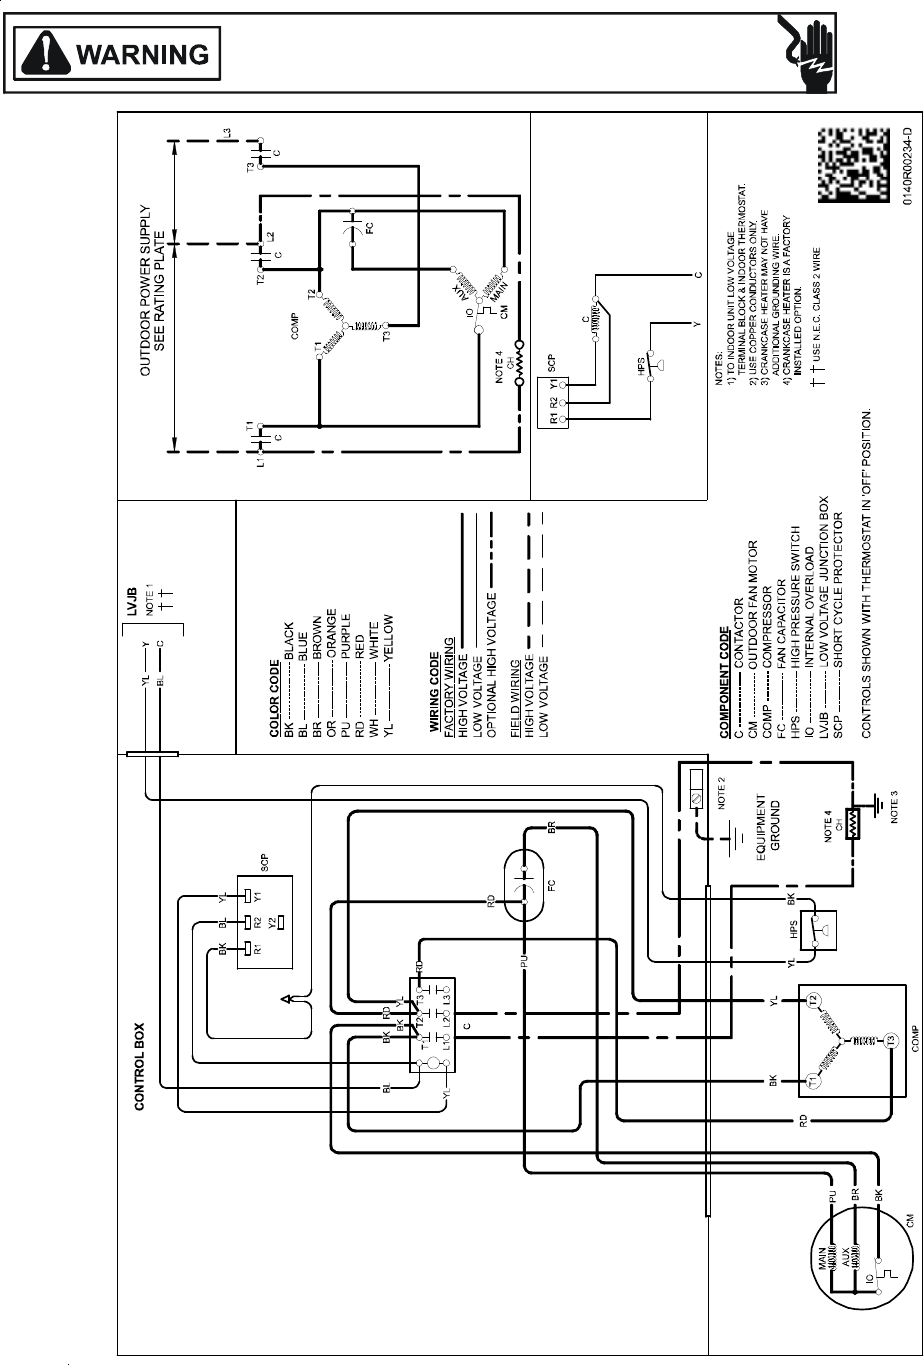 01ae4219 1c37 407a b2d5 49c2253cfc19 bg15 goodman air conditioning wiring diagram wiring diagram simonand goodman a30-15 wiring diagram at soozxer.org